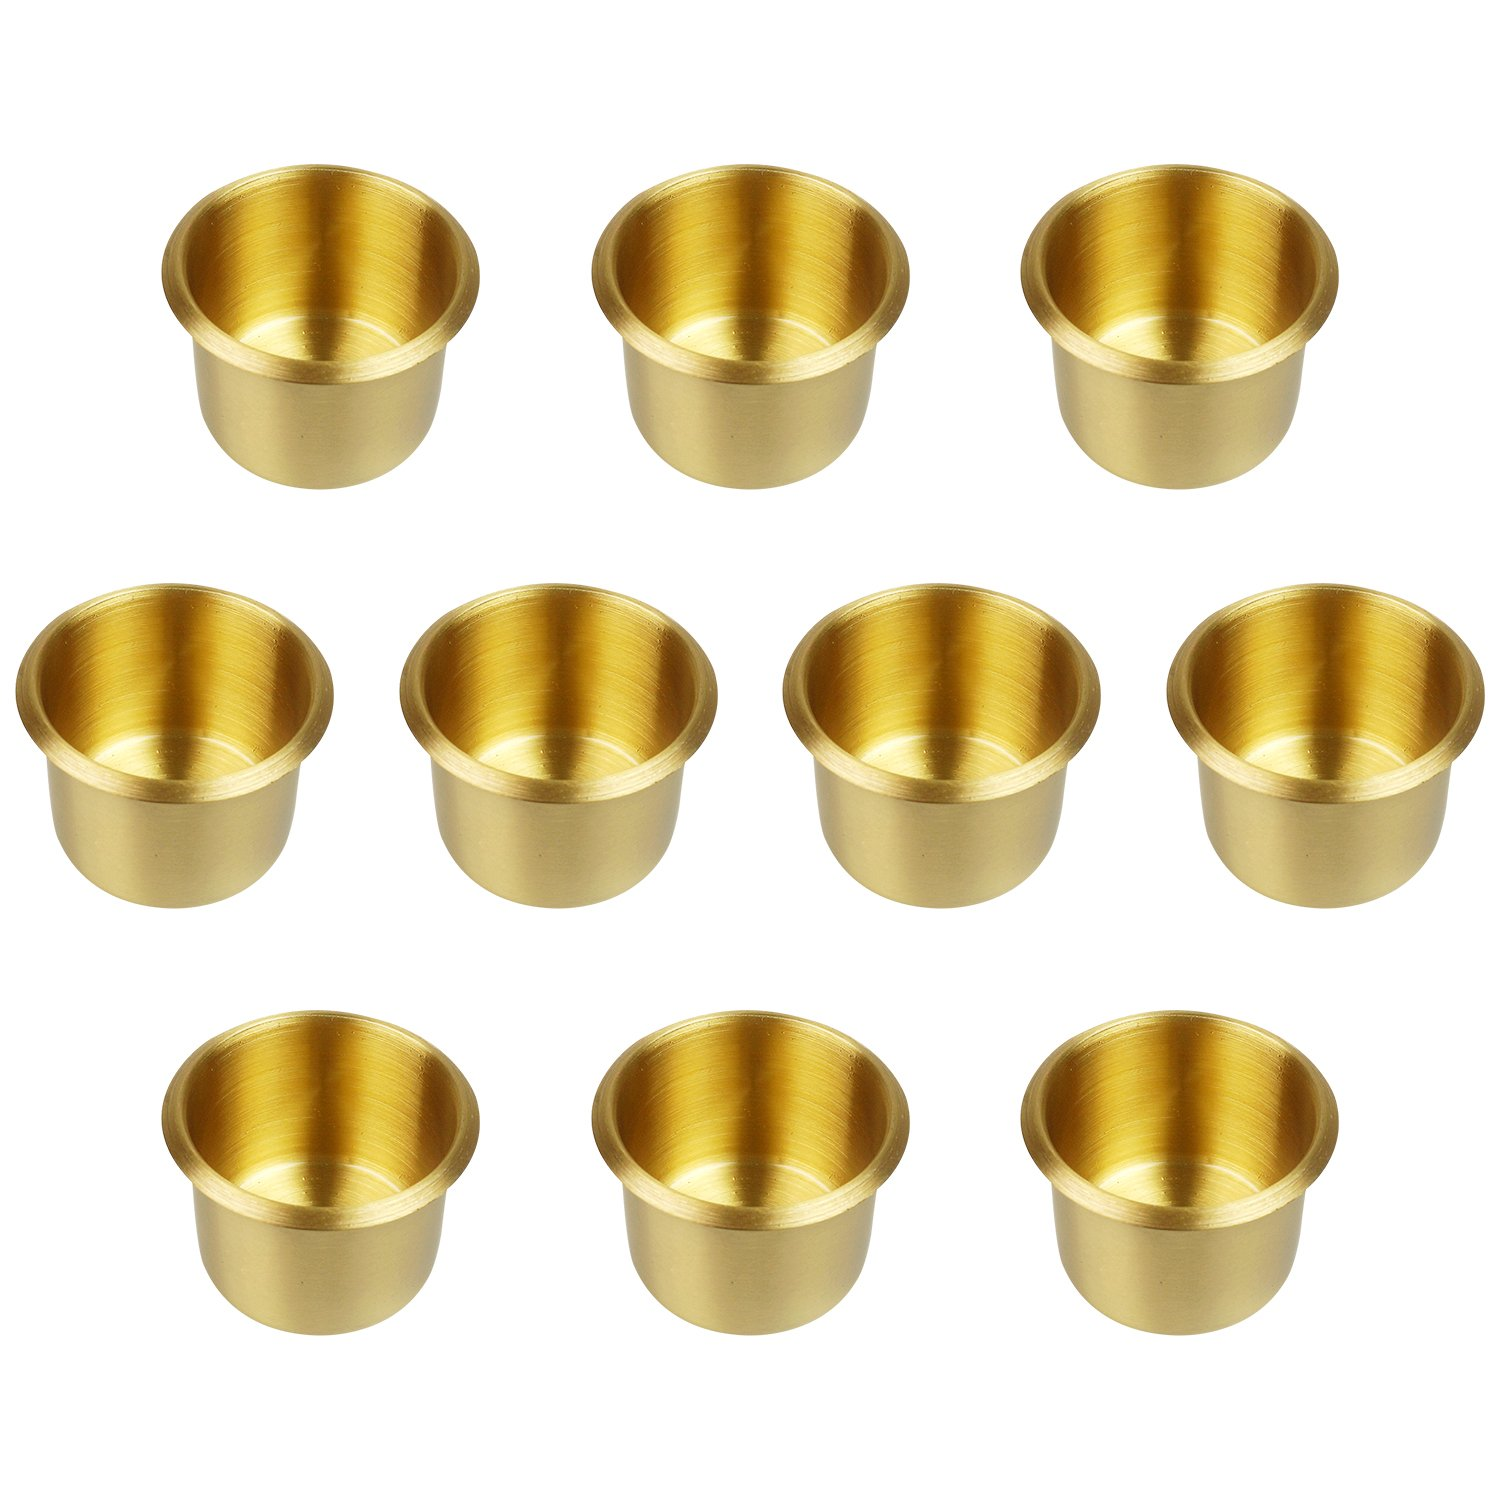 YH Poker Lot of 10 Solid Brass Drop In Cup Holder, Small by YH Poker